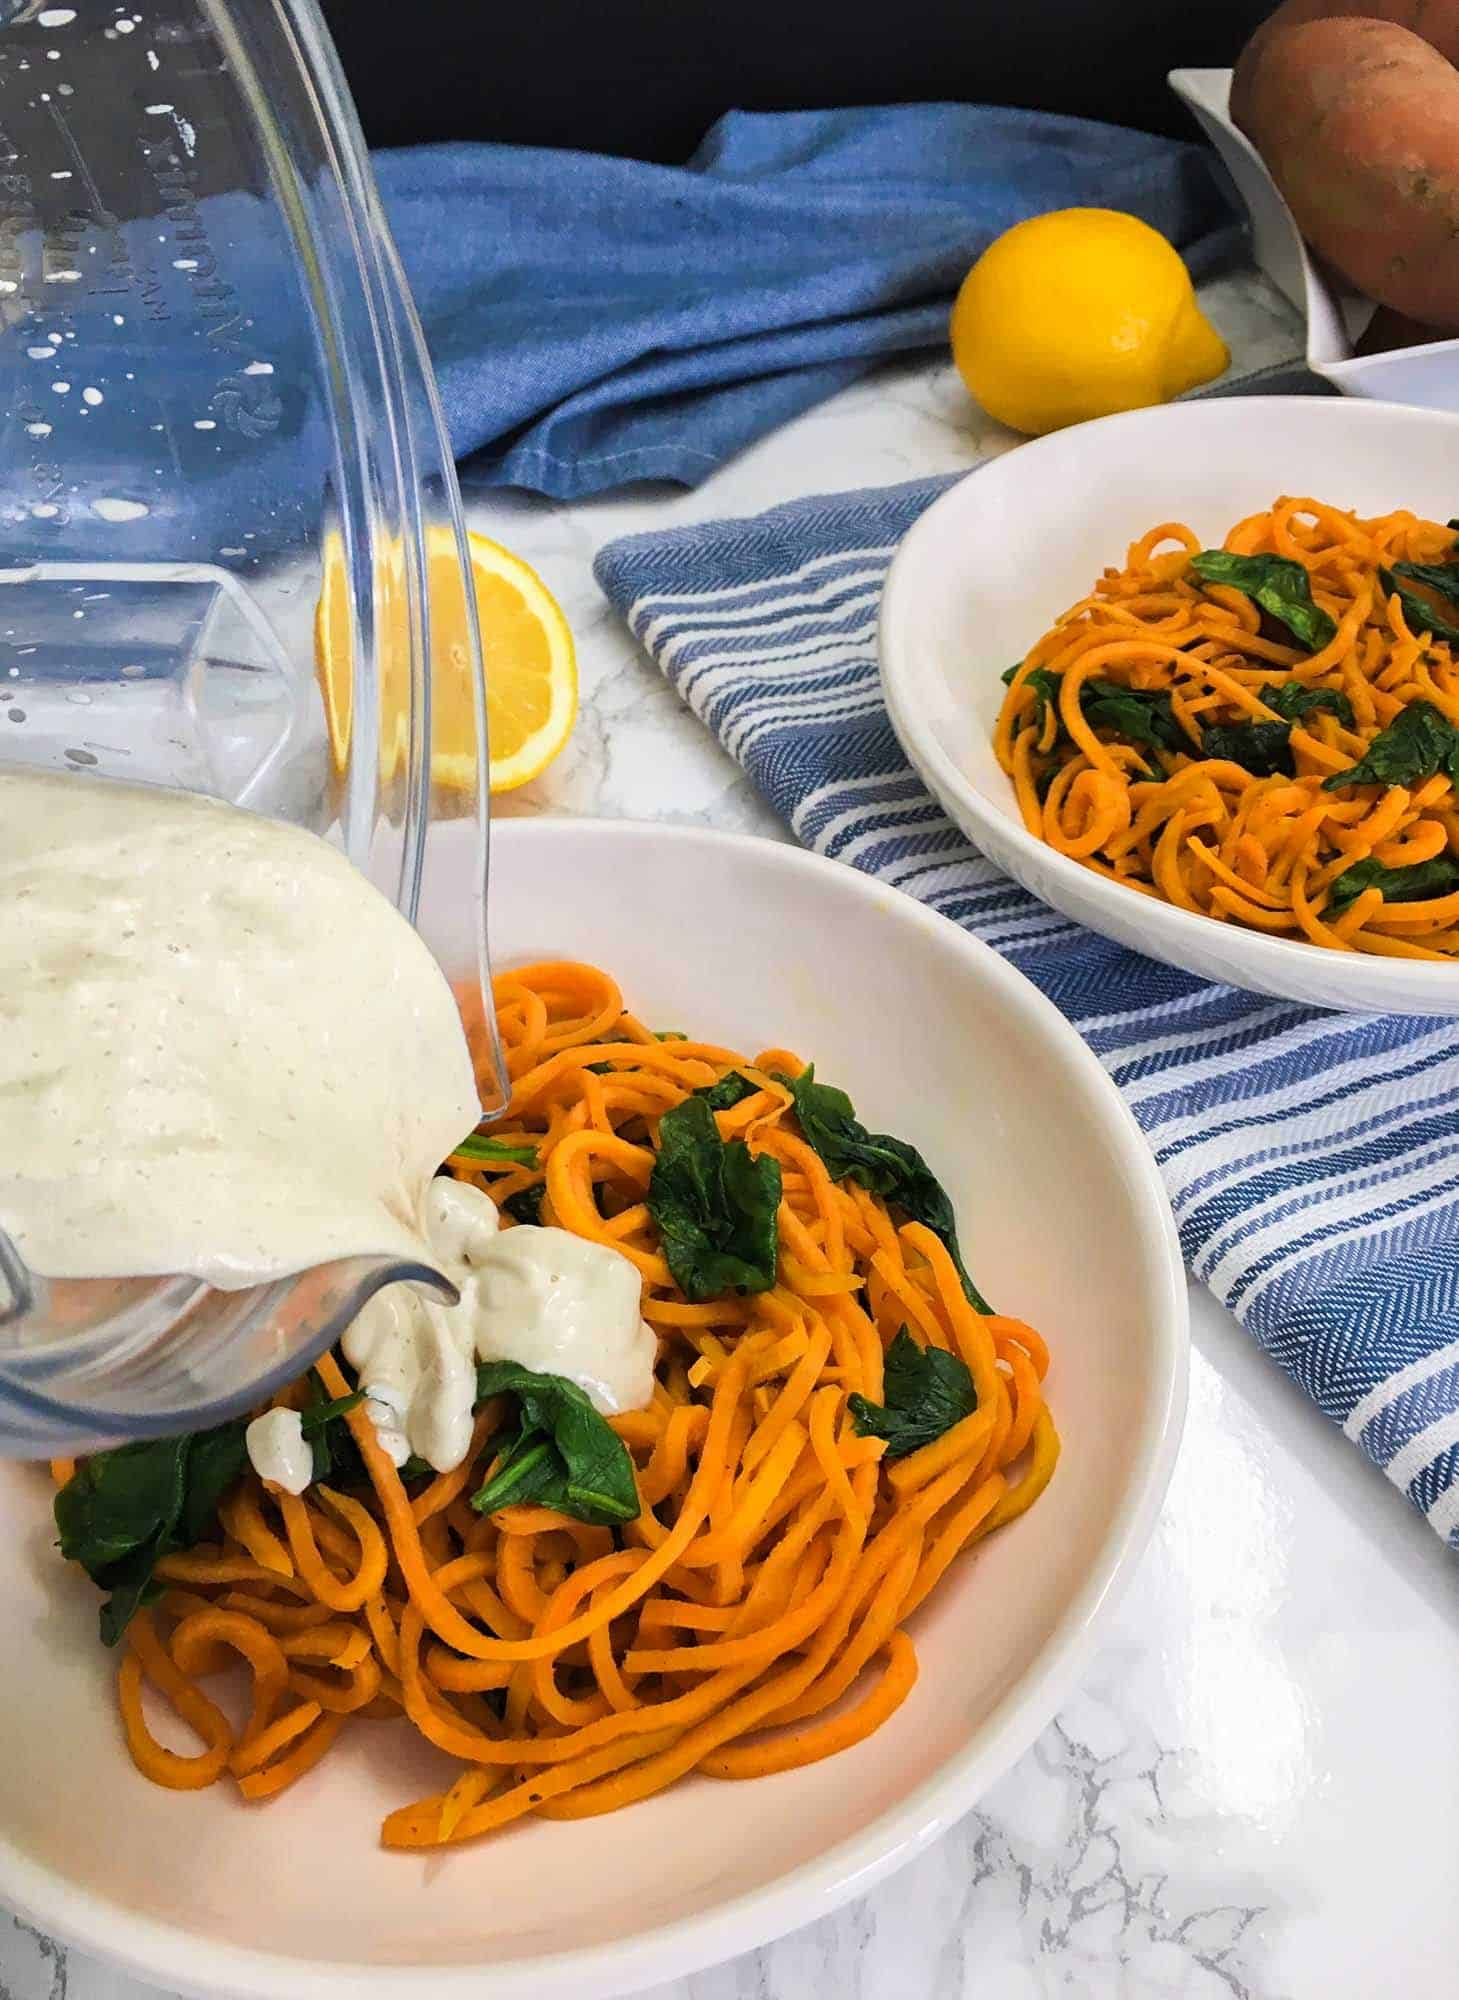 pouring vegan alfredo sauce from blender over plate of sweet potato noodles